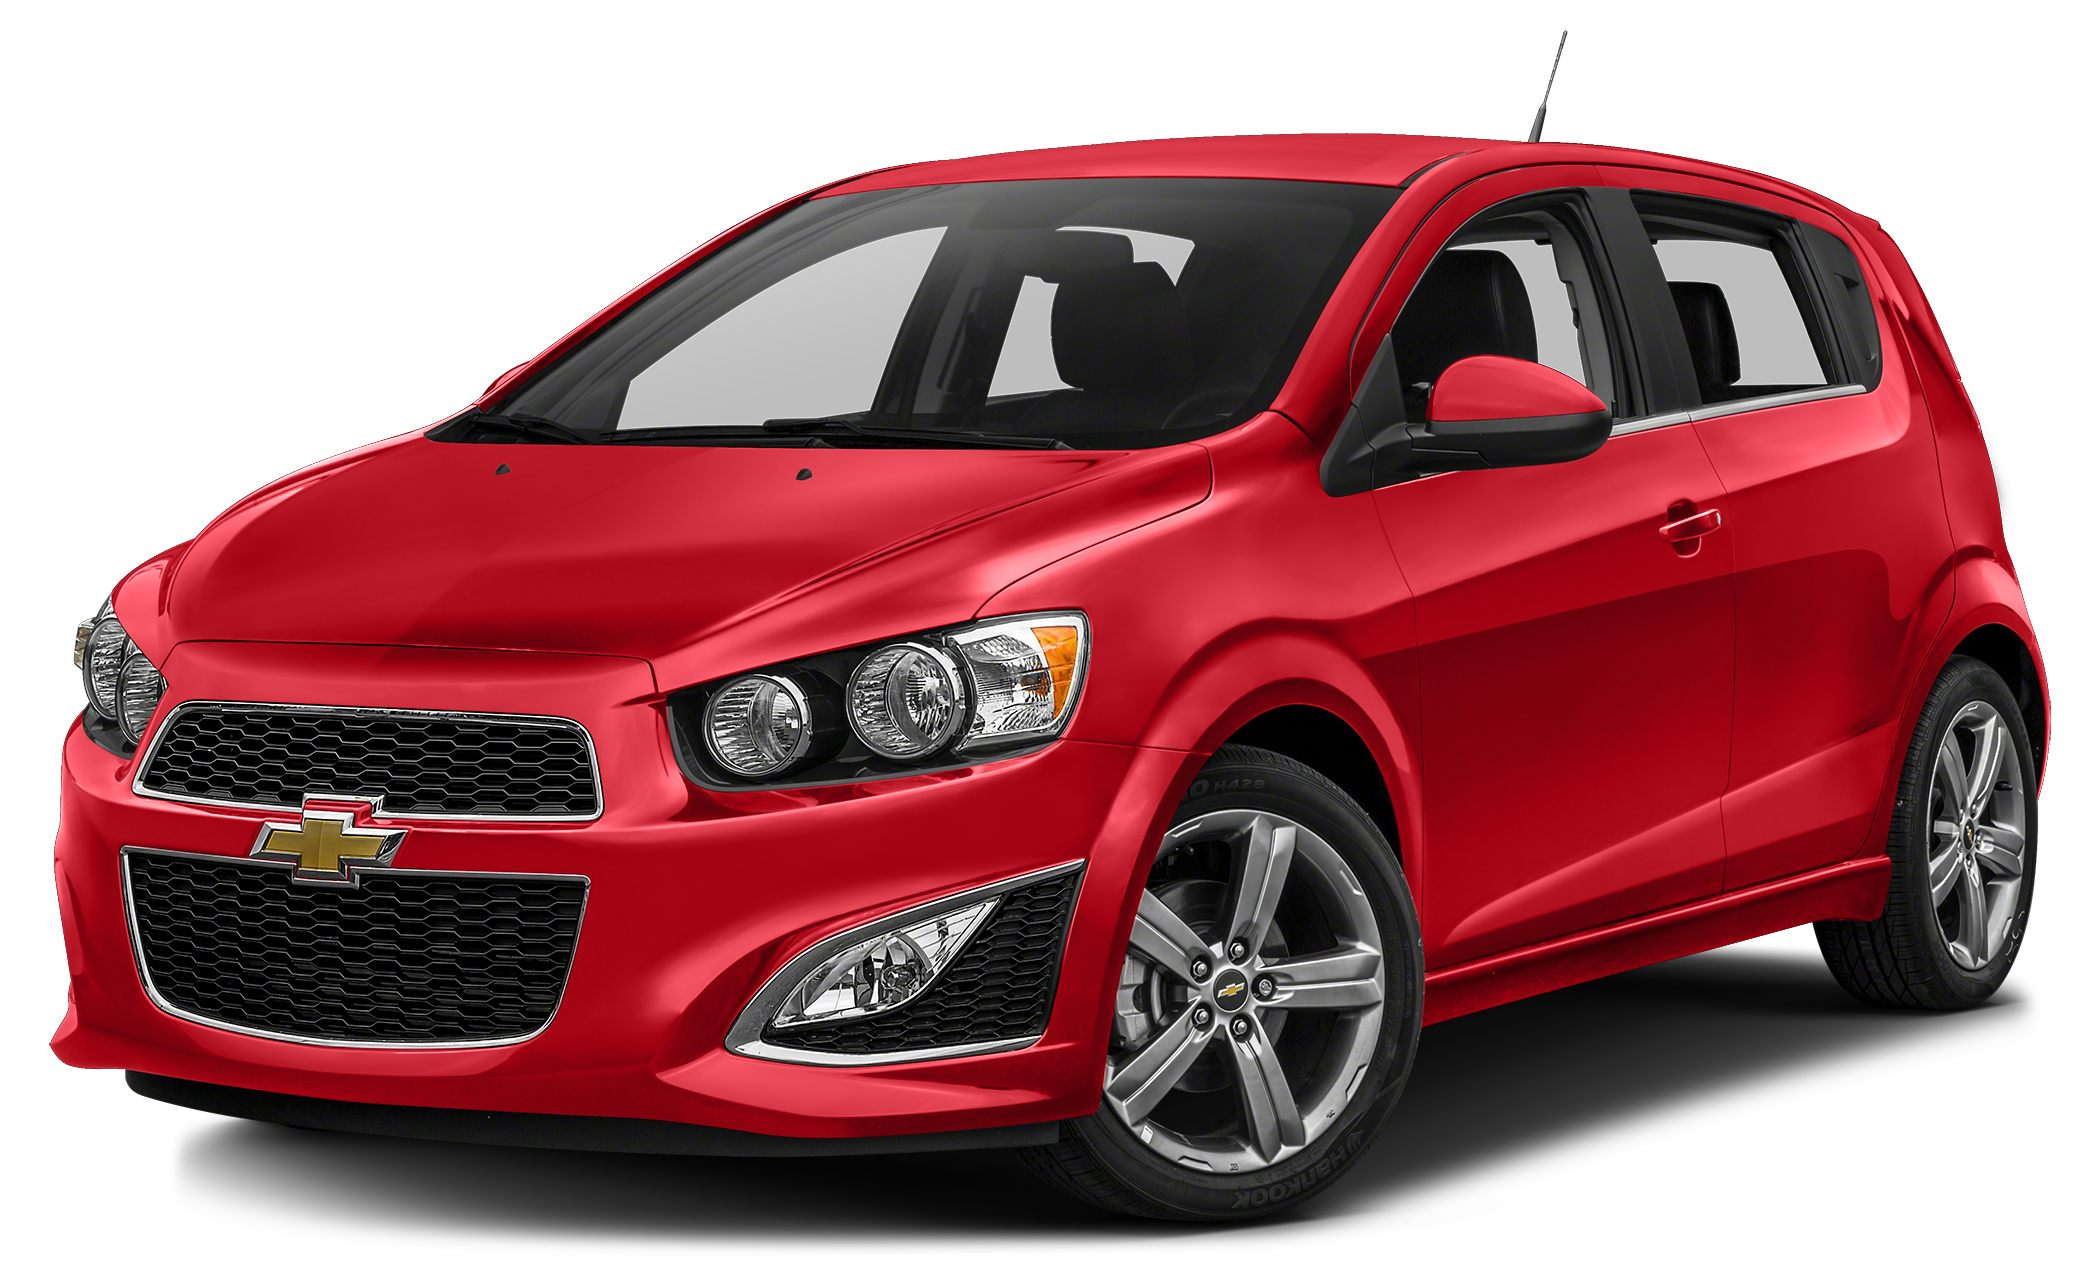 2014 Chevrolet Sonic RS GREAT MILES 14 EPA 34 MPG Hwy27 MPG City Moonroof Heated Leather Seats